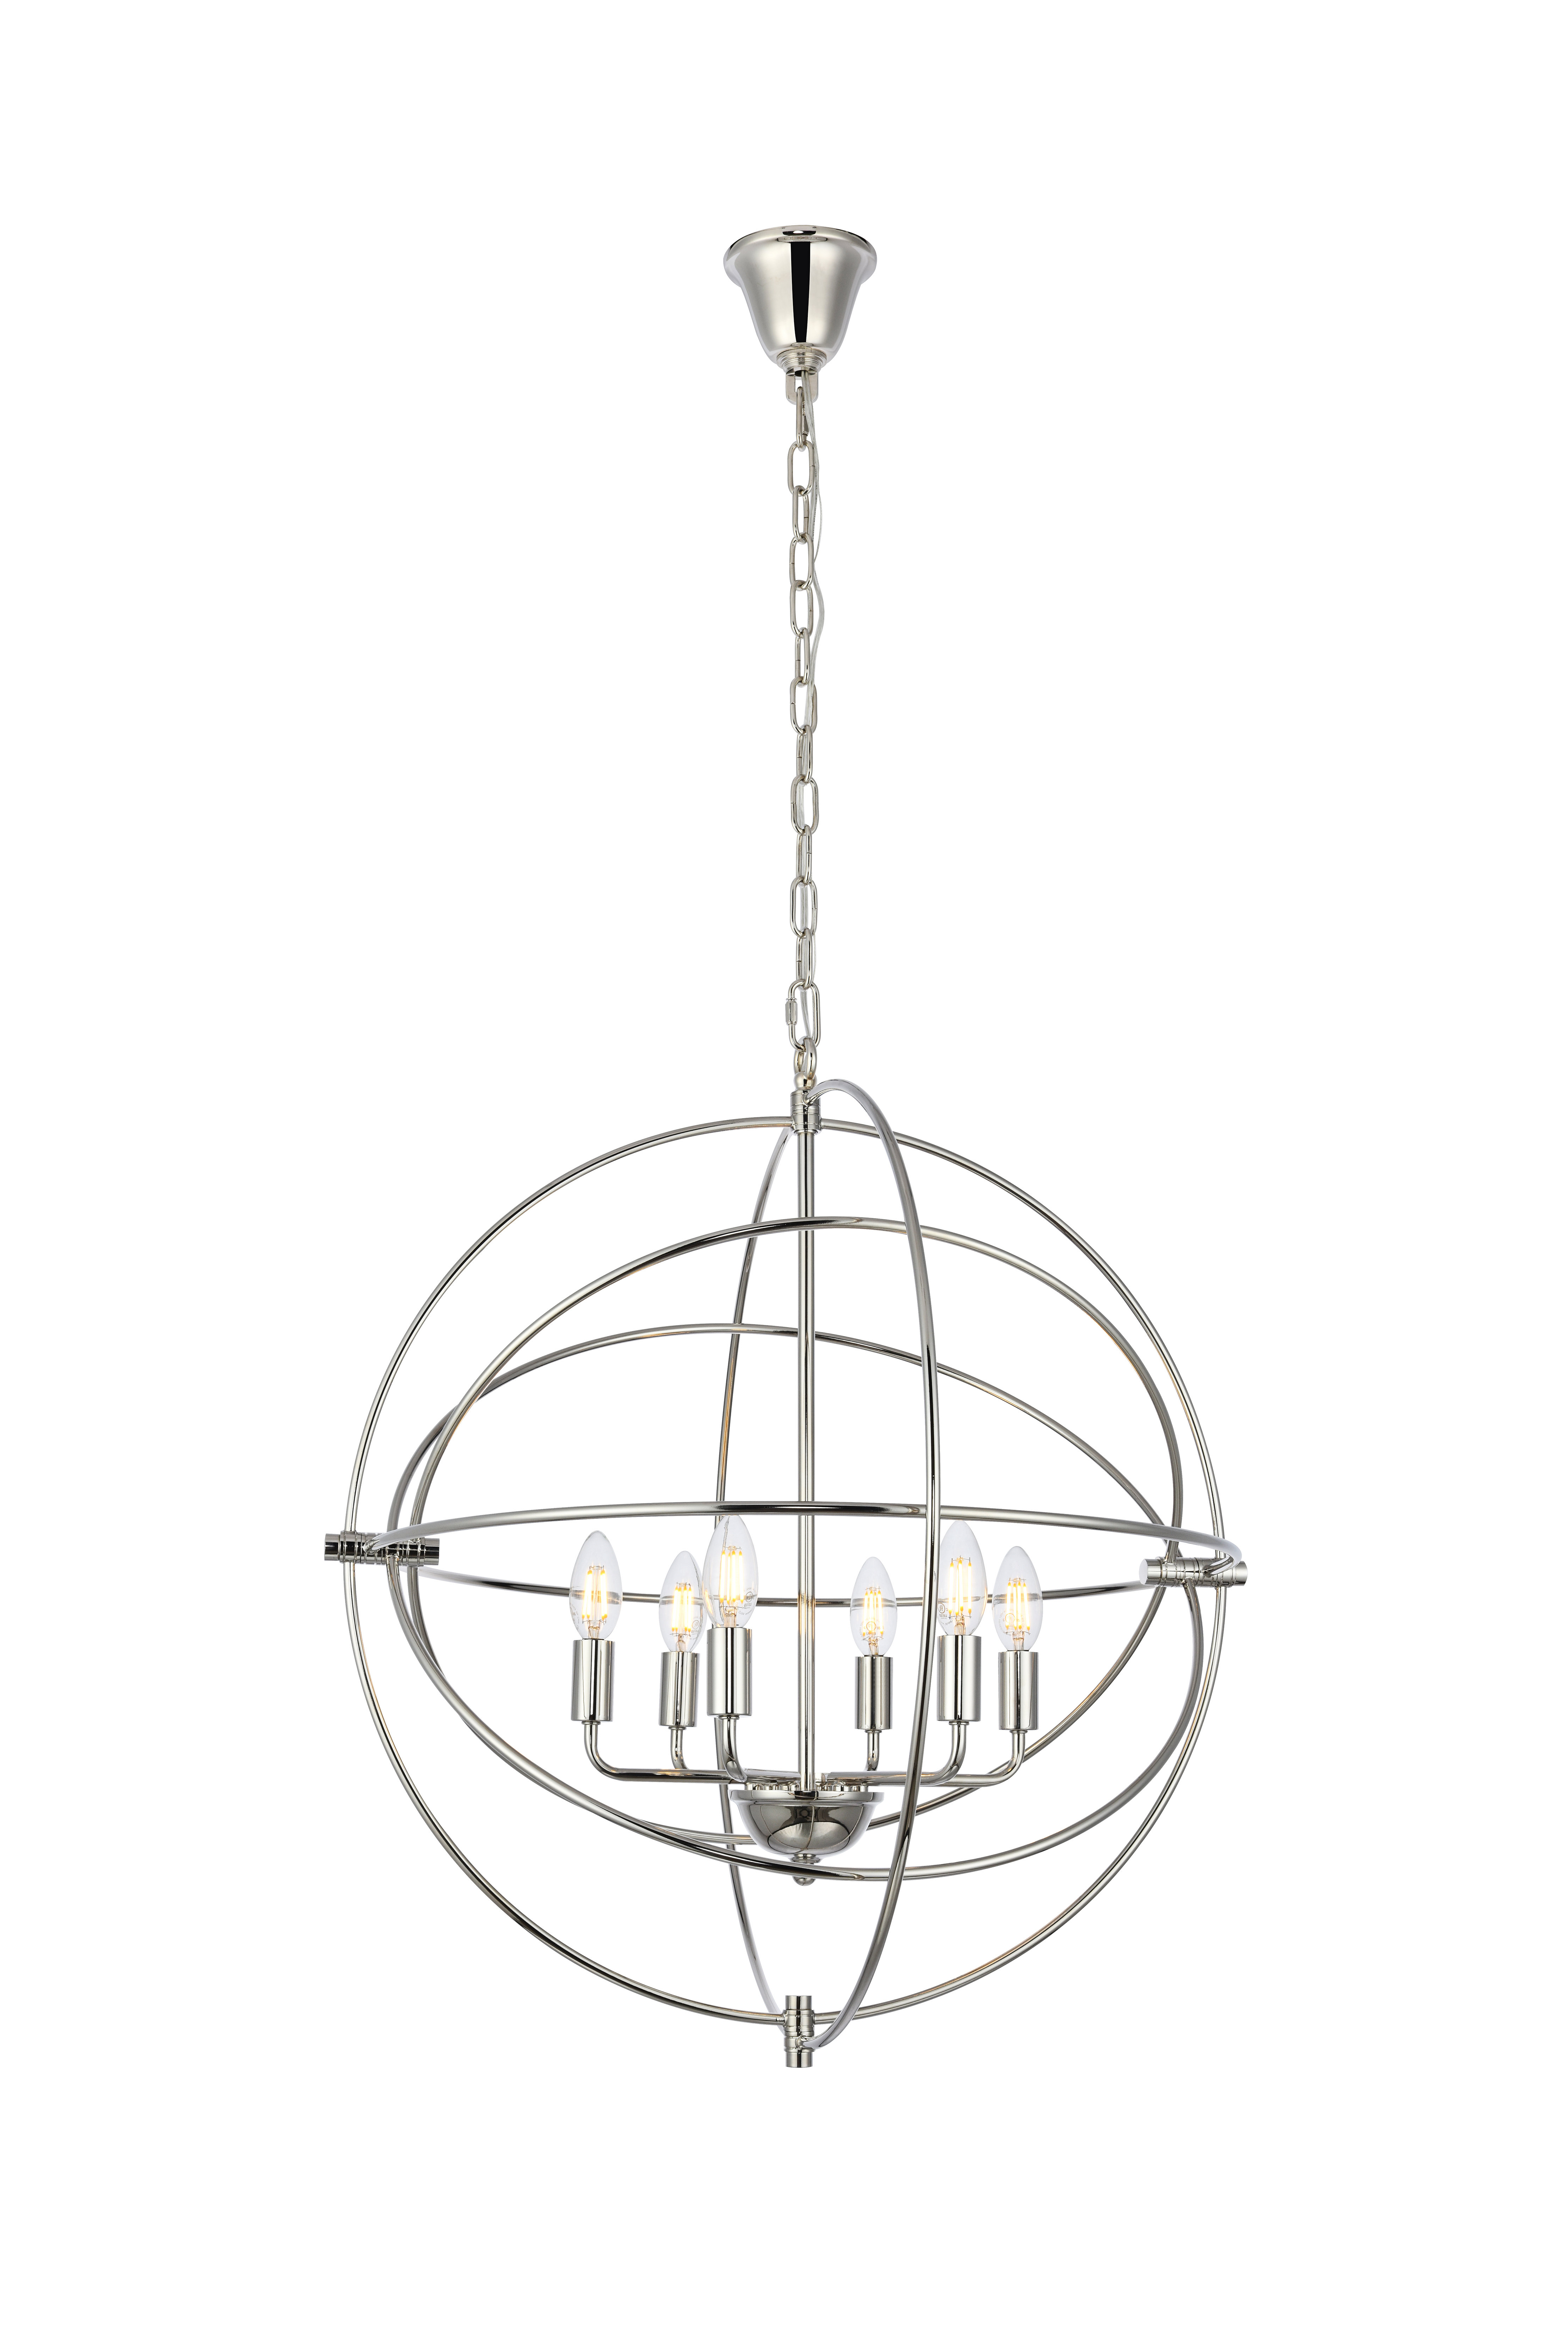 Hamby 6 Light Globe Chandelier Regarding Gregoire 6 Light Globe Chandeliers (View 10 of 30)